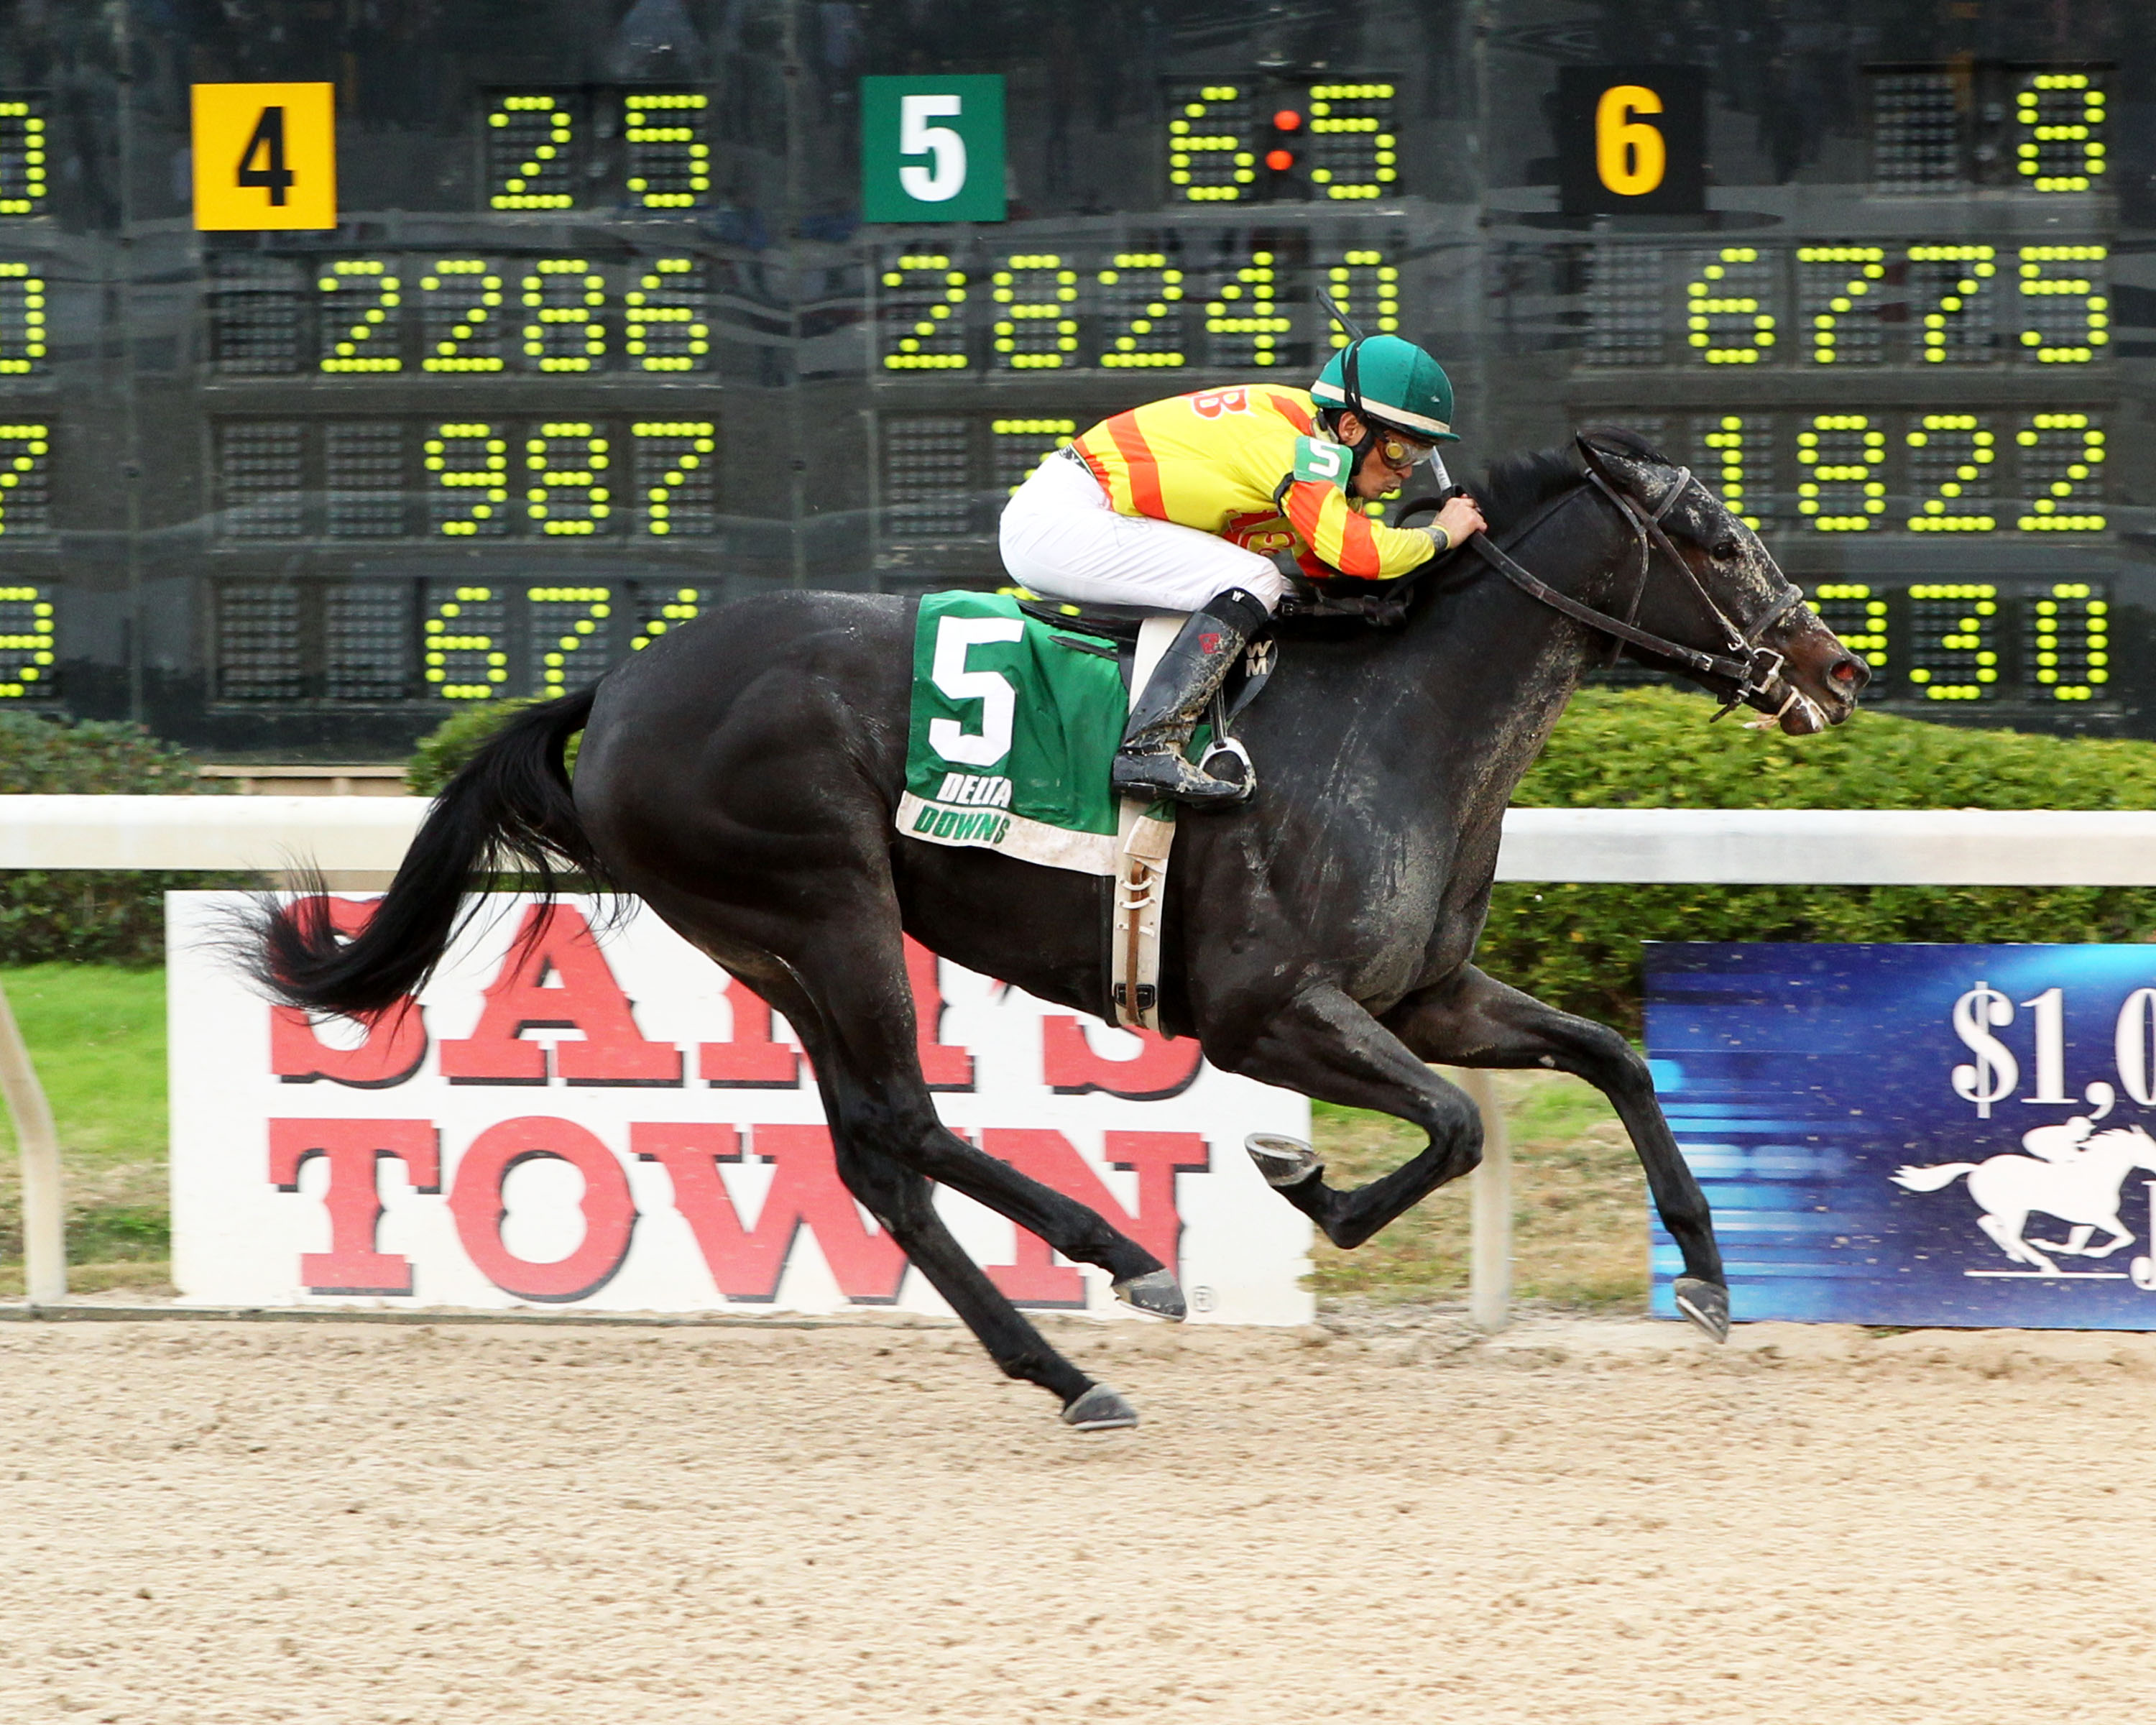 WIND CHILL FACTOR - The 6th Running of Louisiana Jewel - 11-22-14 - R04 - DED - Finish